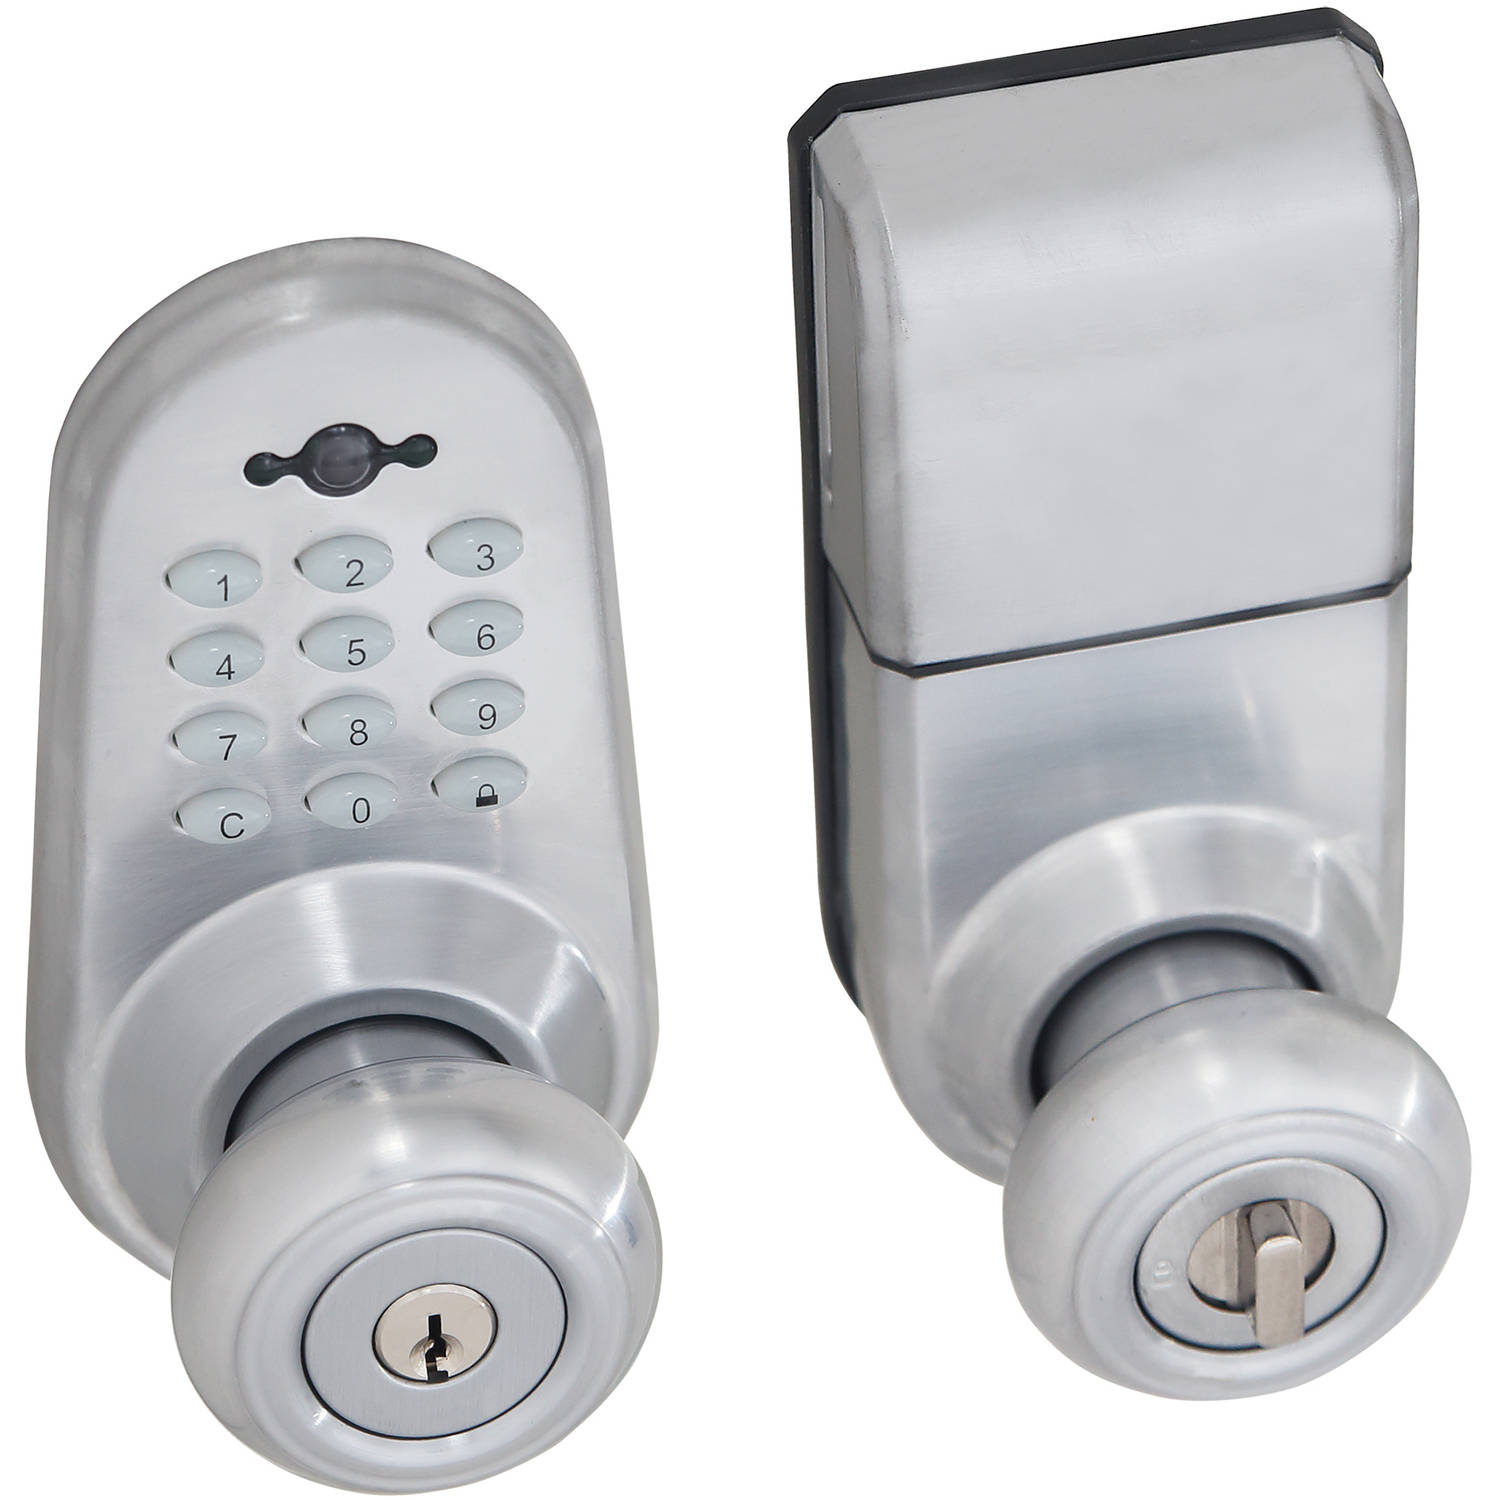 Satin Chrome Digital Door Lock Entry Knob with Remote